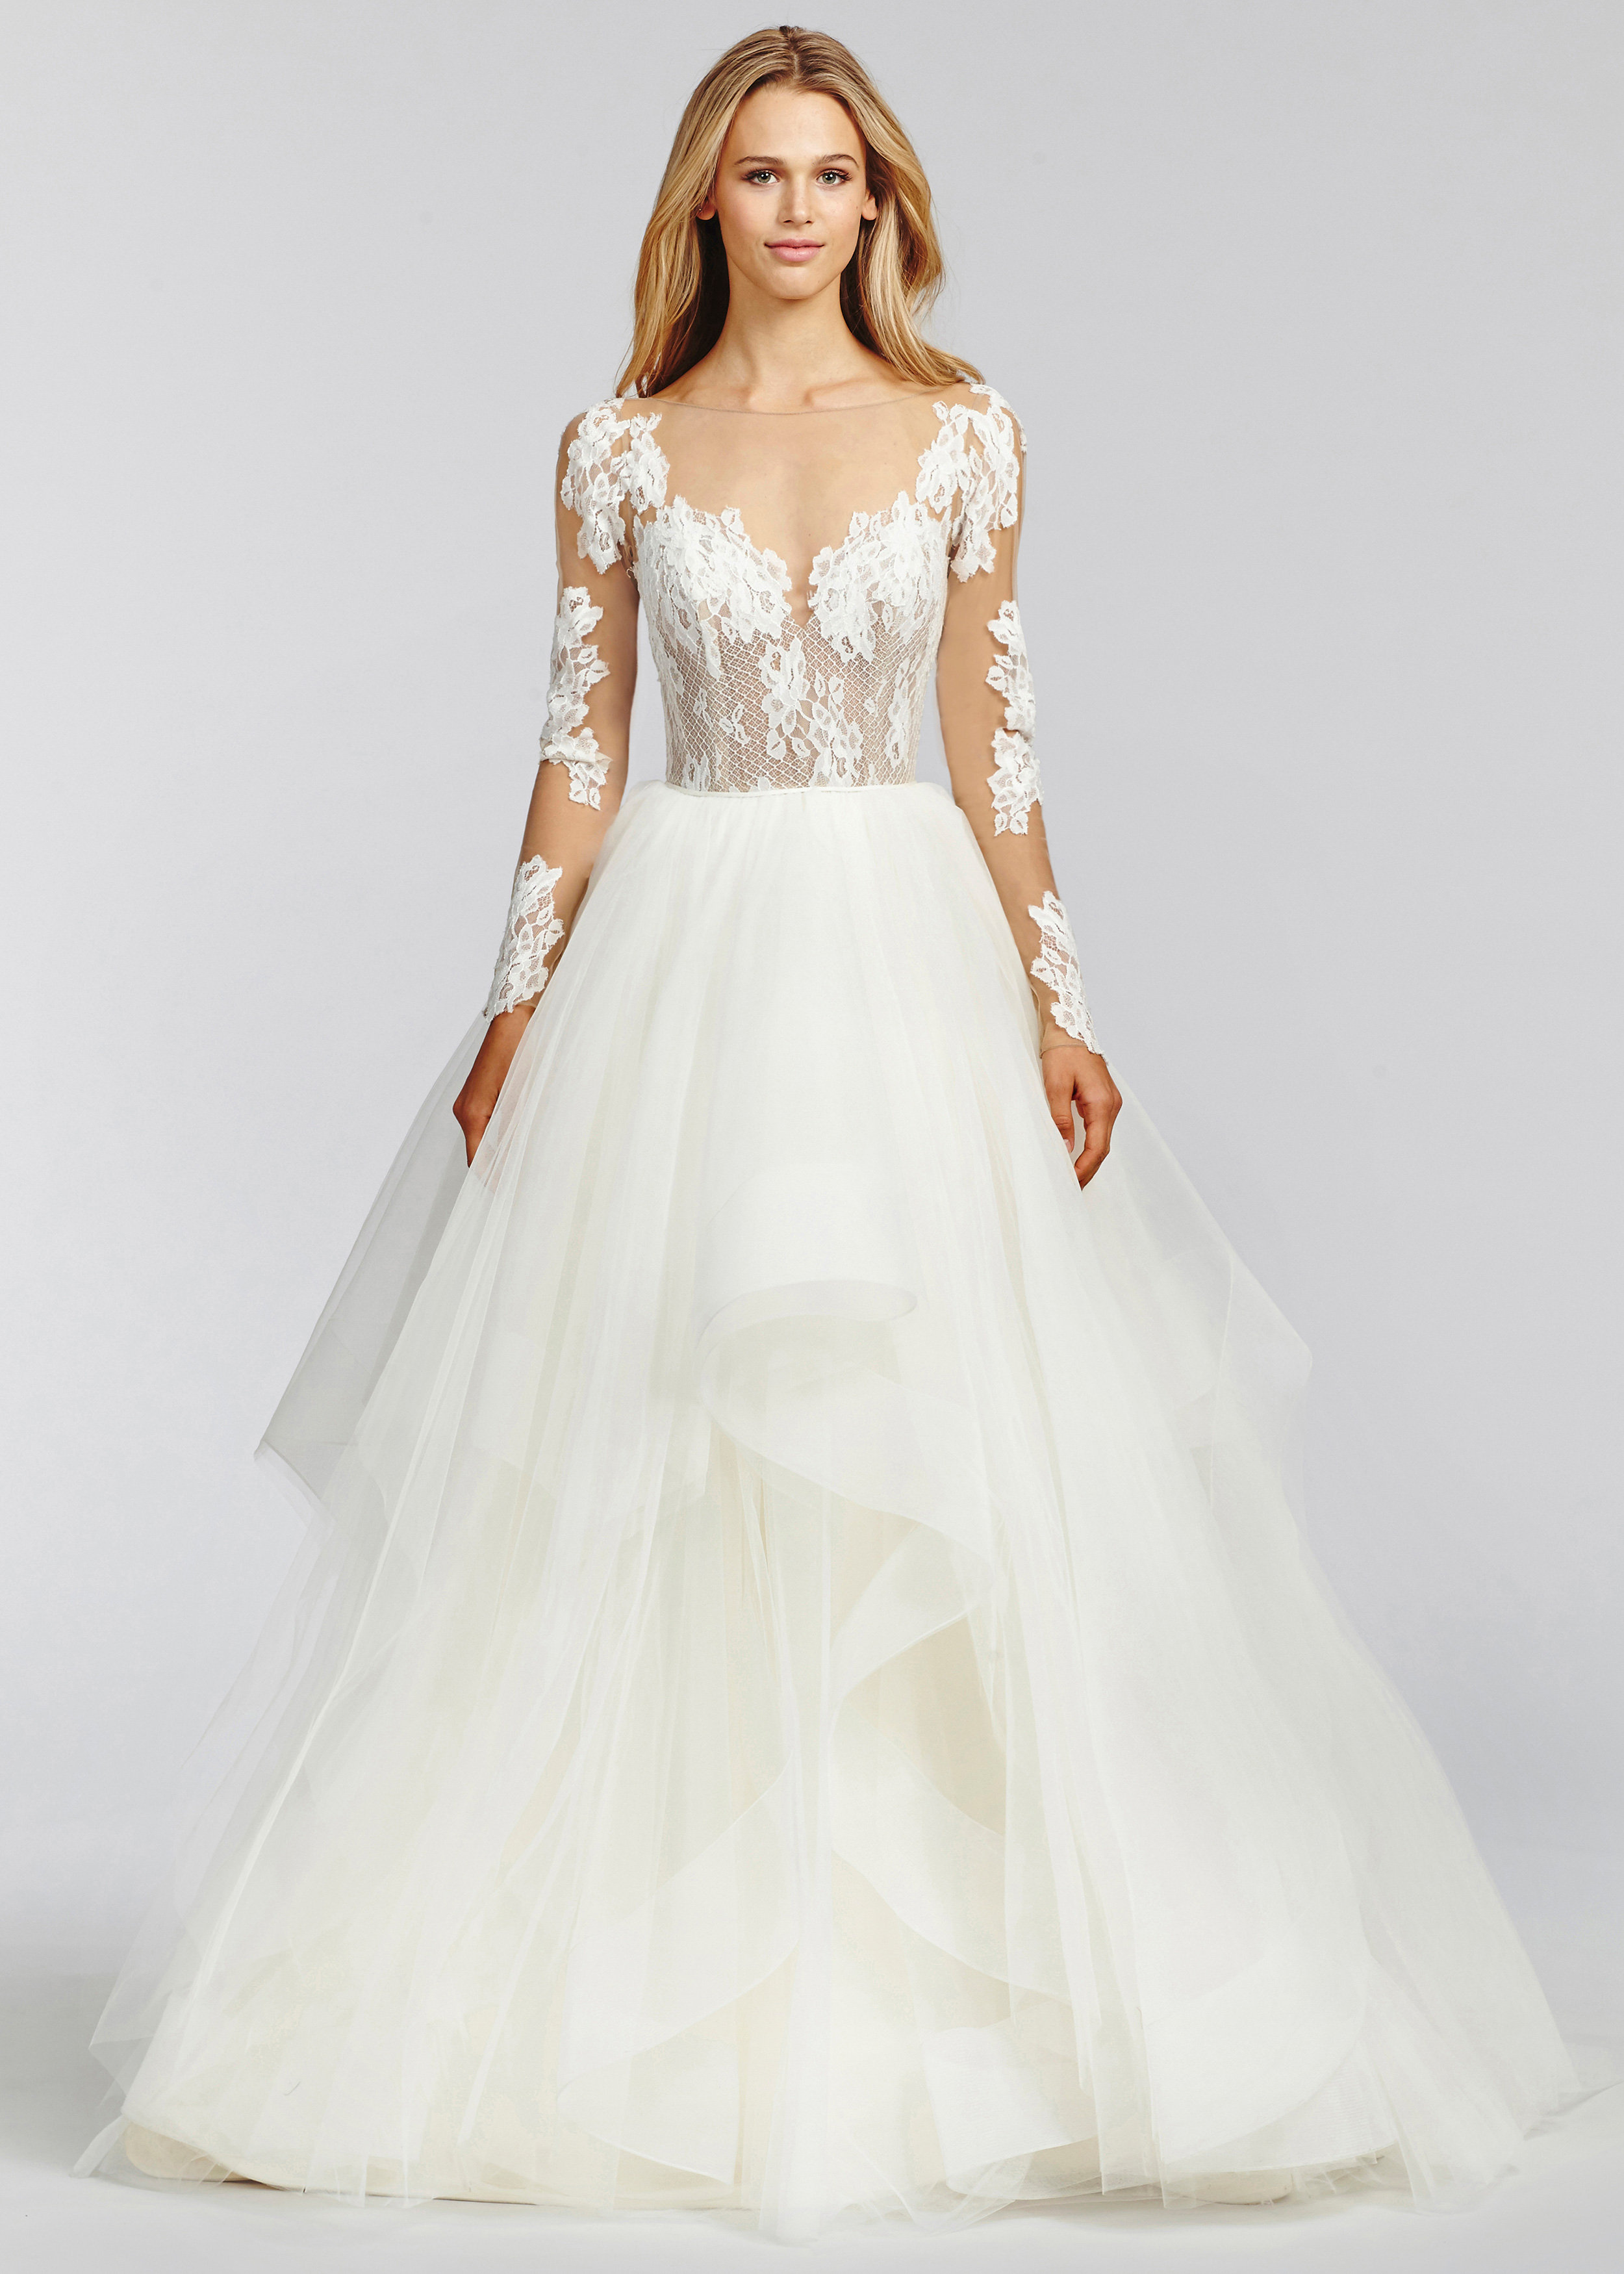 cfa700ac4c10 Trendy A-line Wedding Dress | Kleinfeld Bridal